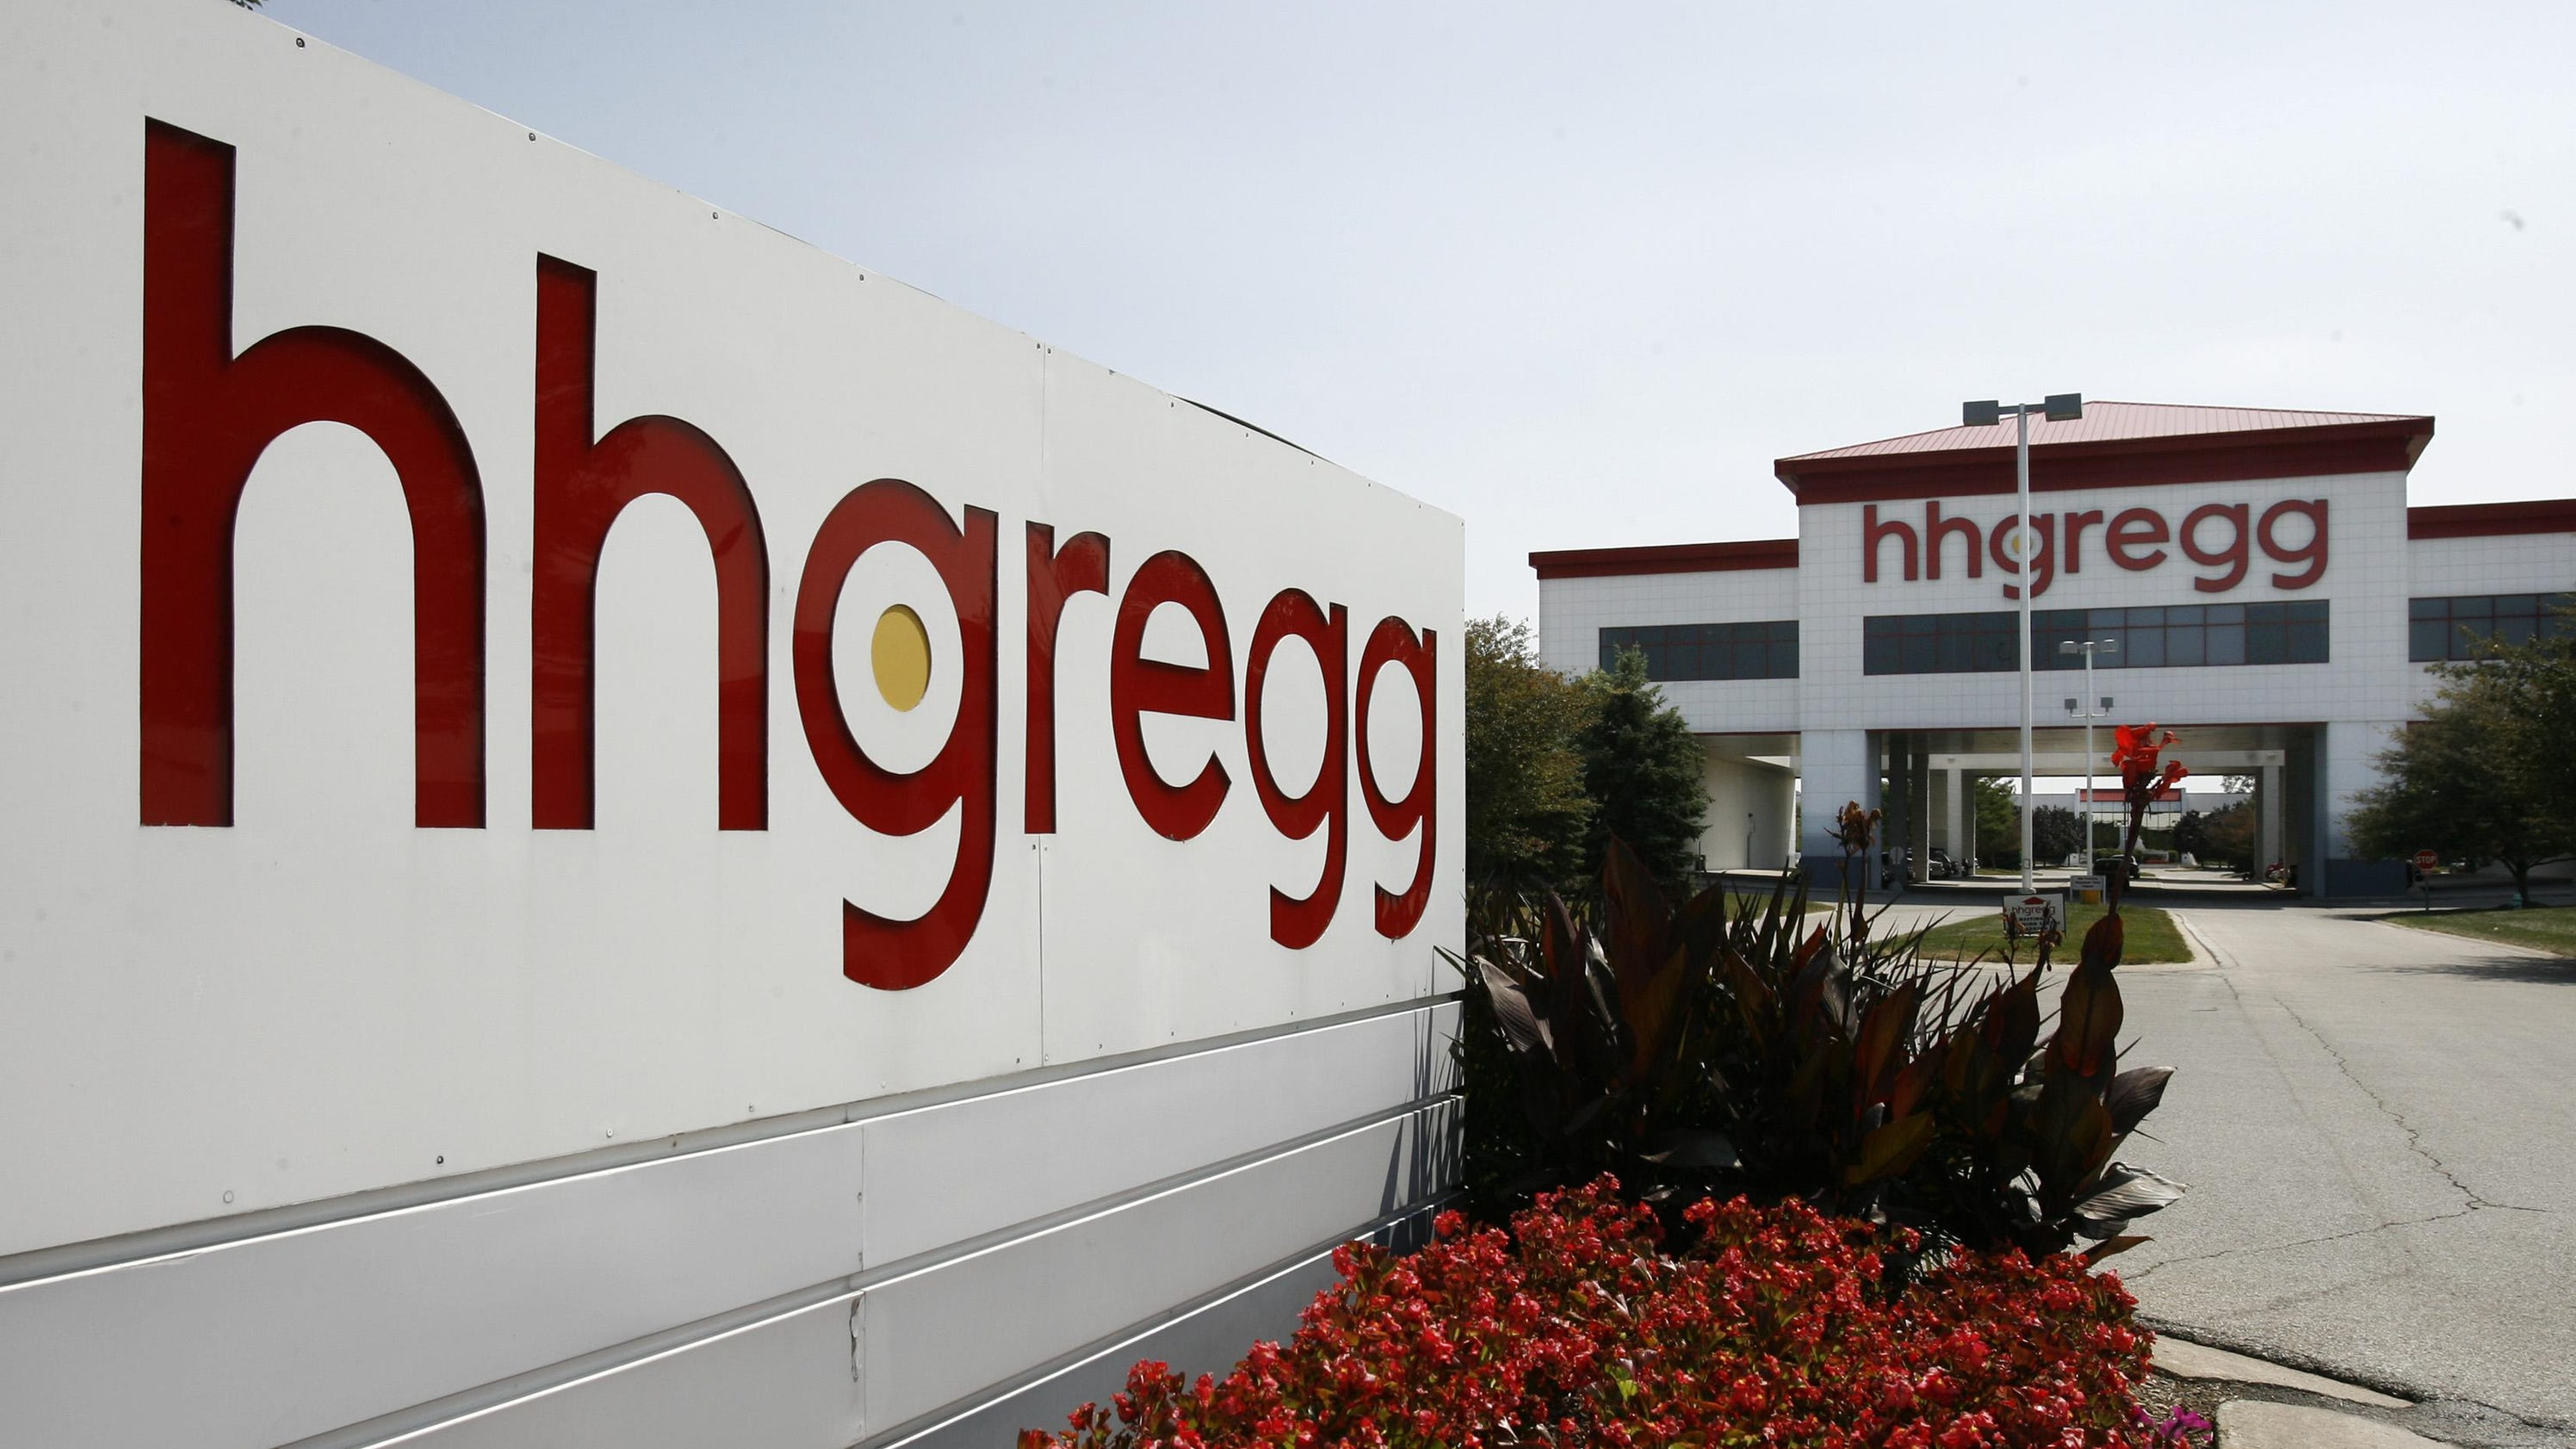 hhgregg to lay off corporate workers